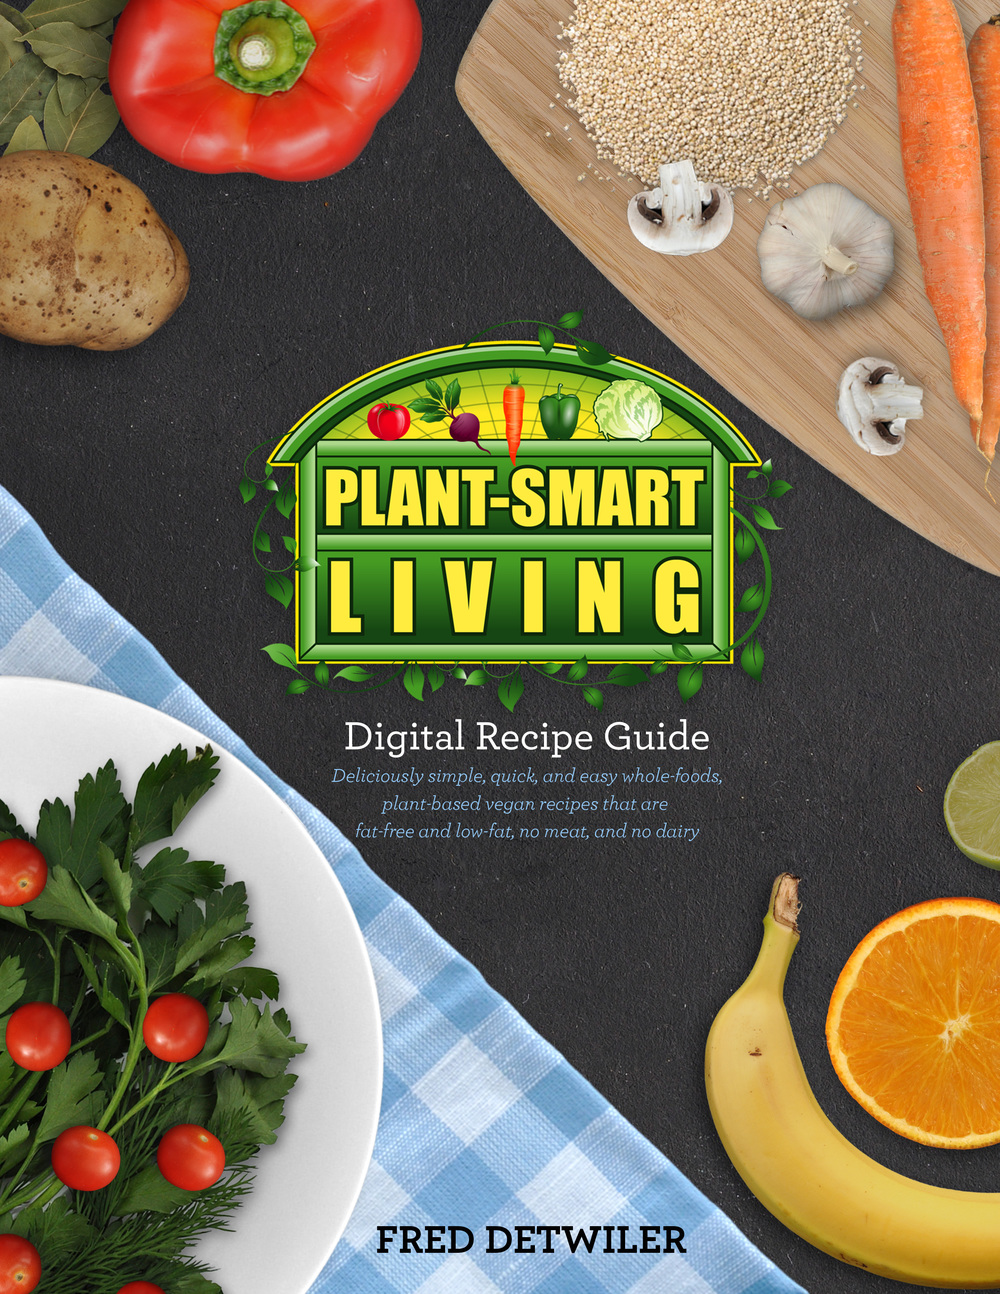 The Plant-Smart Living Digital Recipe Guide - Giveaway